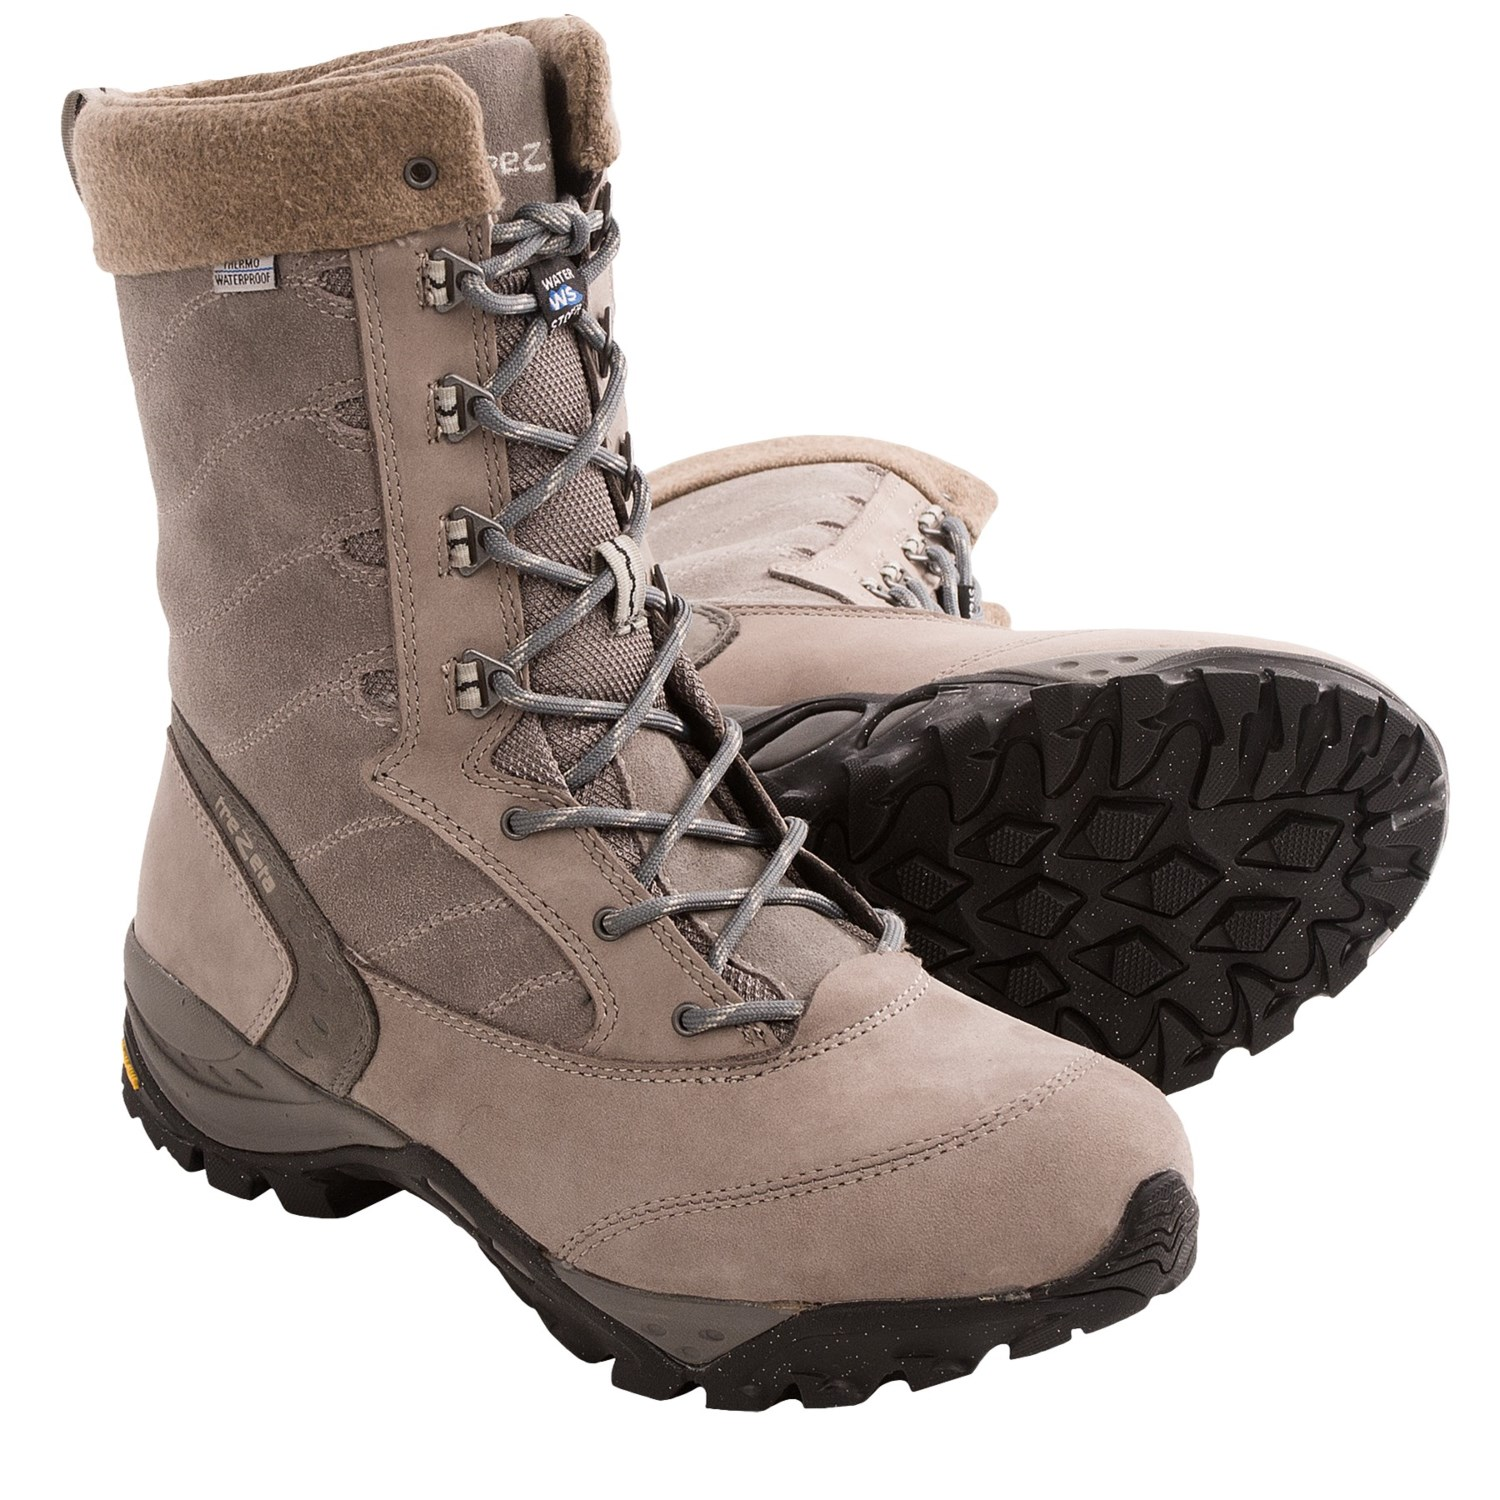 Waterproof Snow Boots Women | Homewood Mountain Ski Resort